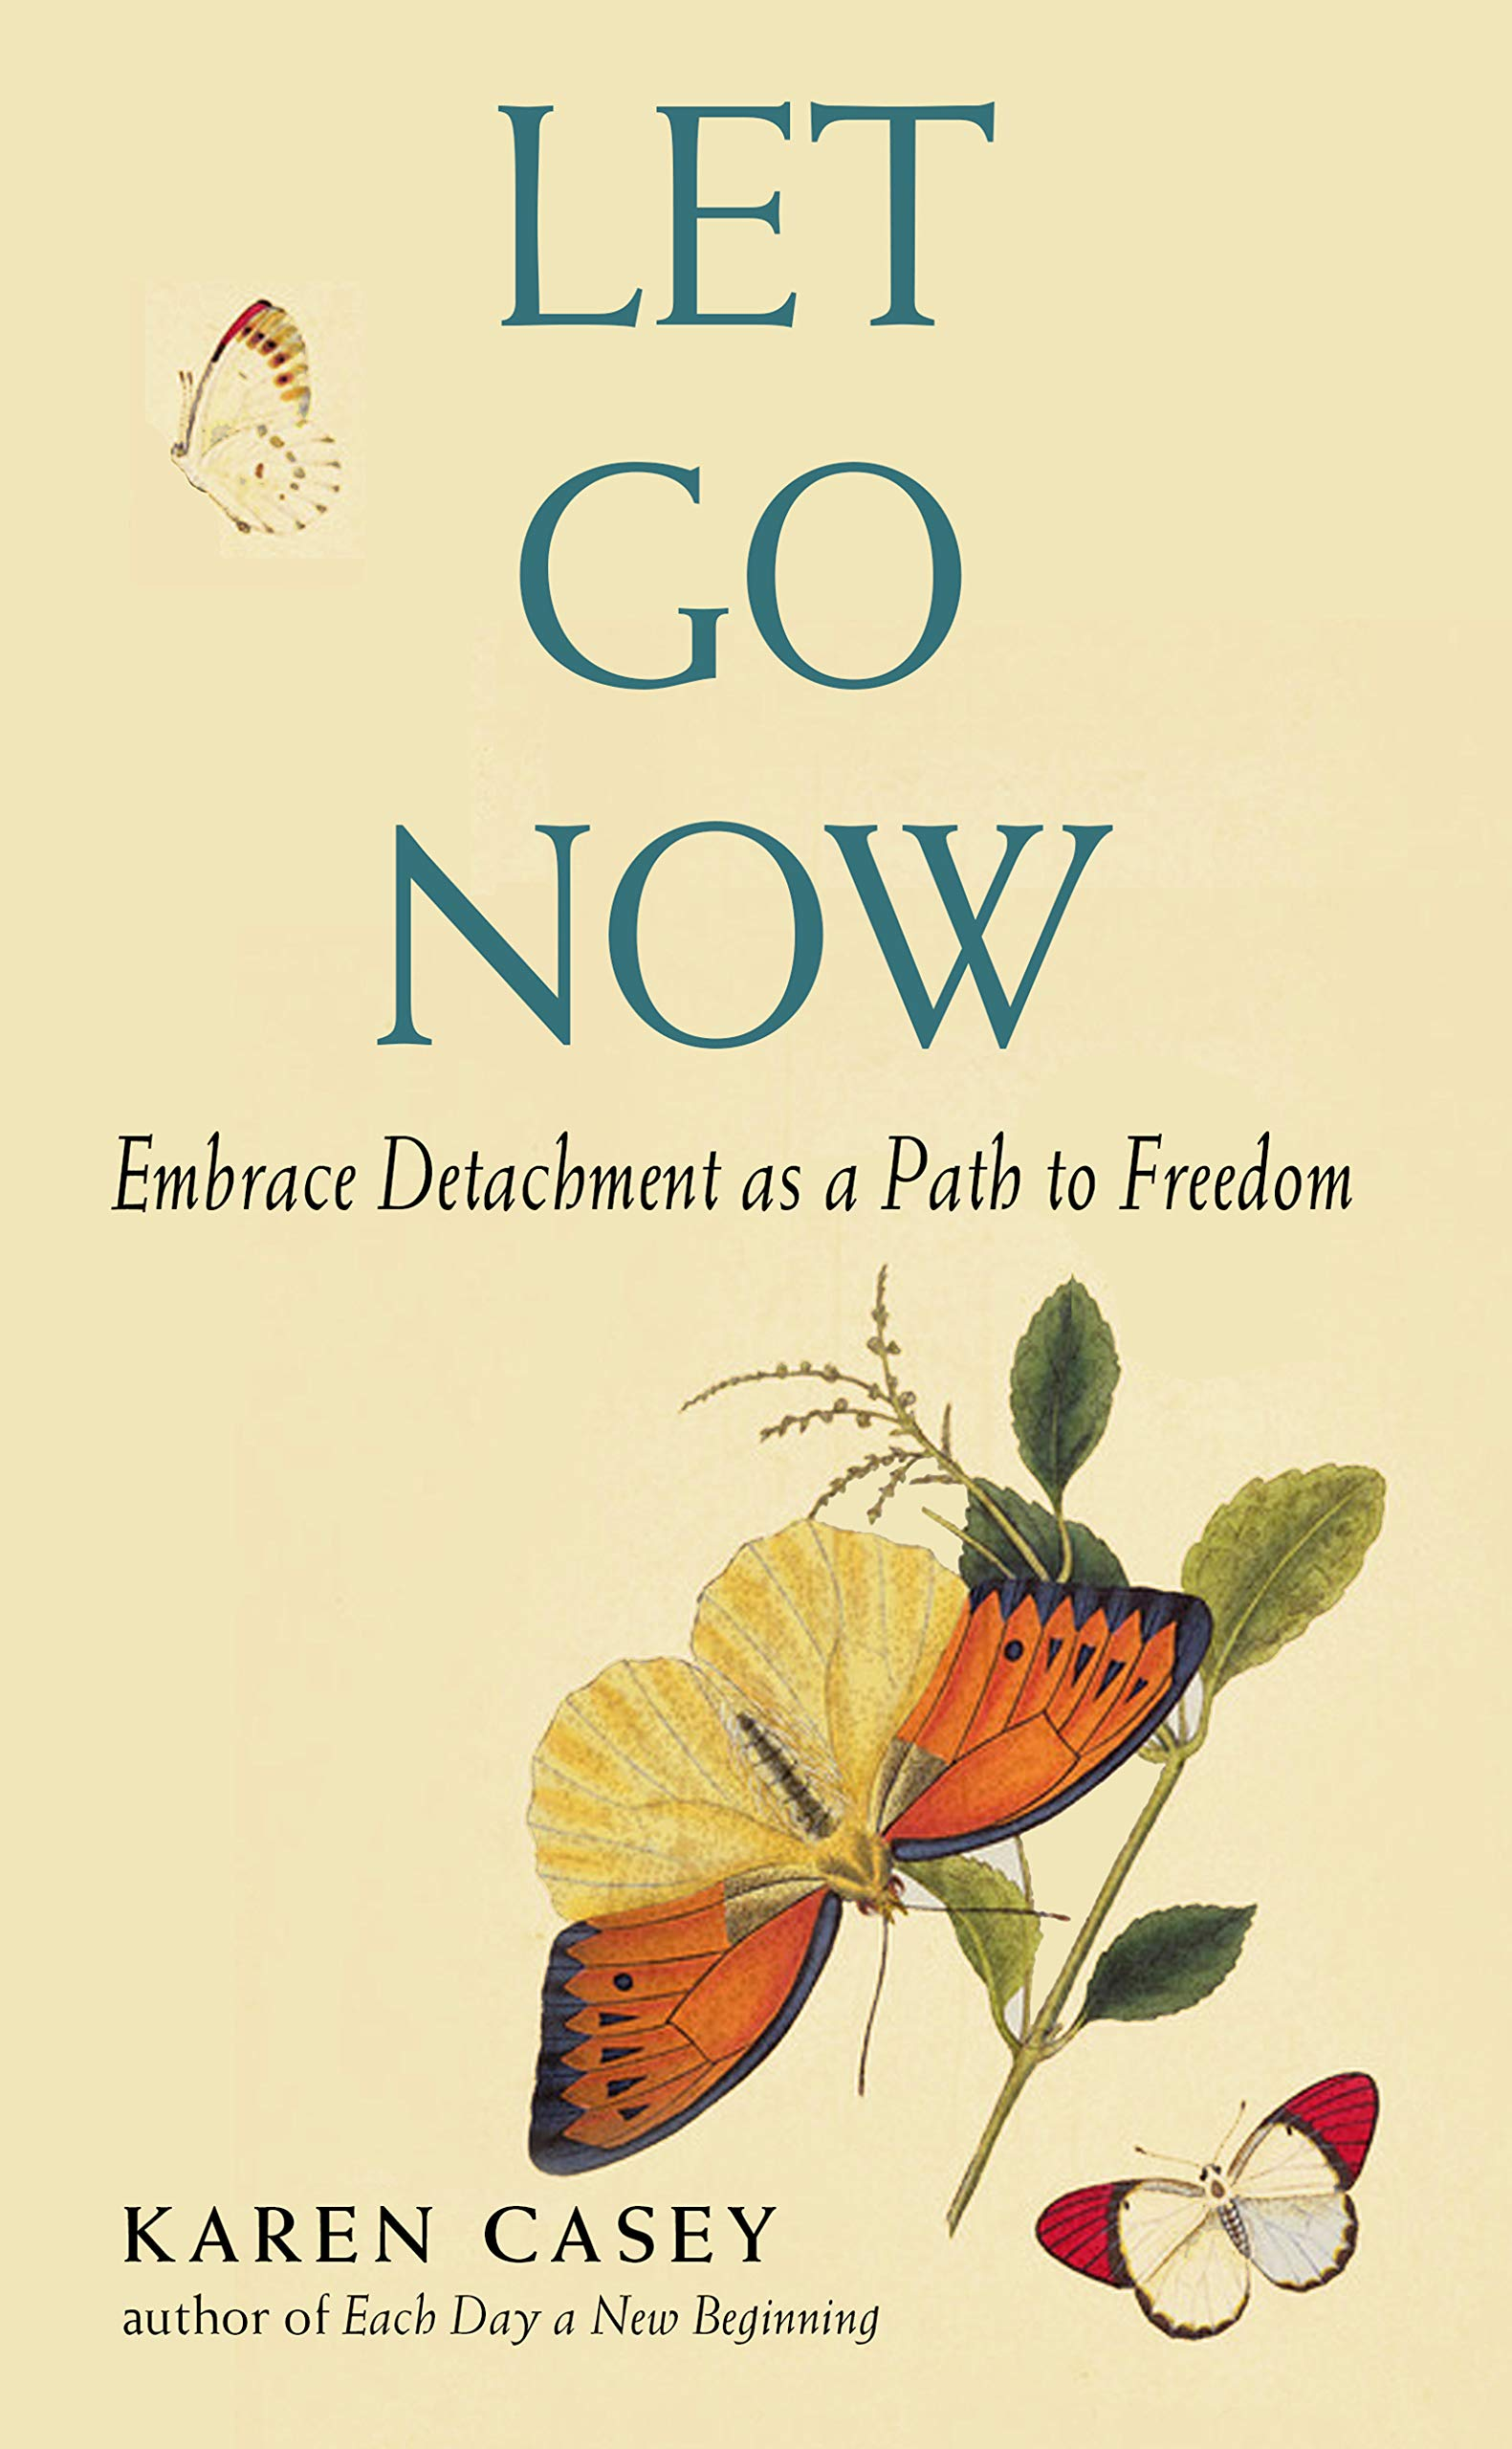 Let Go Now: Embrace Detachment as a Path to Freedom (Addiction Recovery and Al-Anon Self-Help Book)